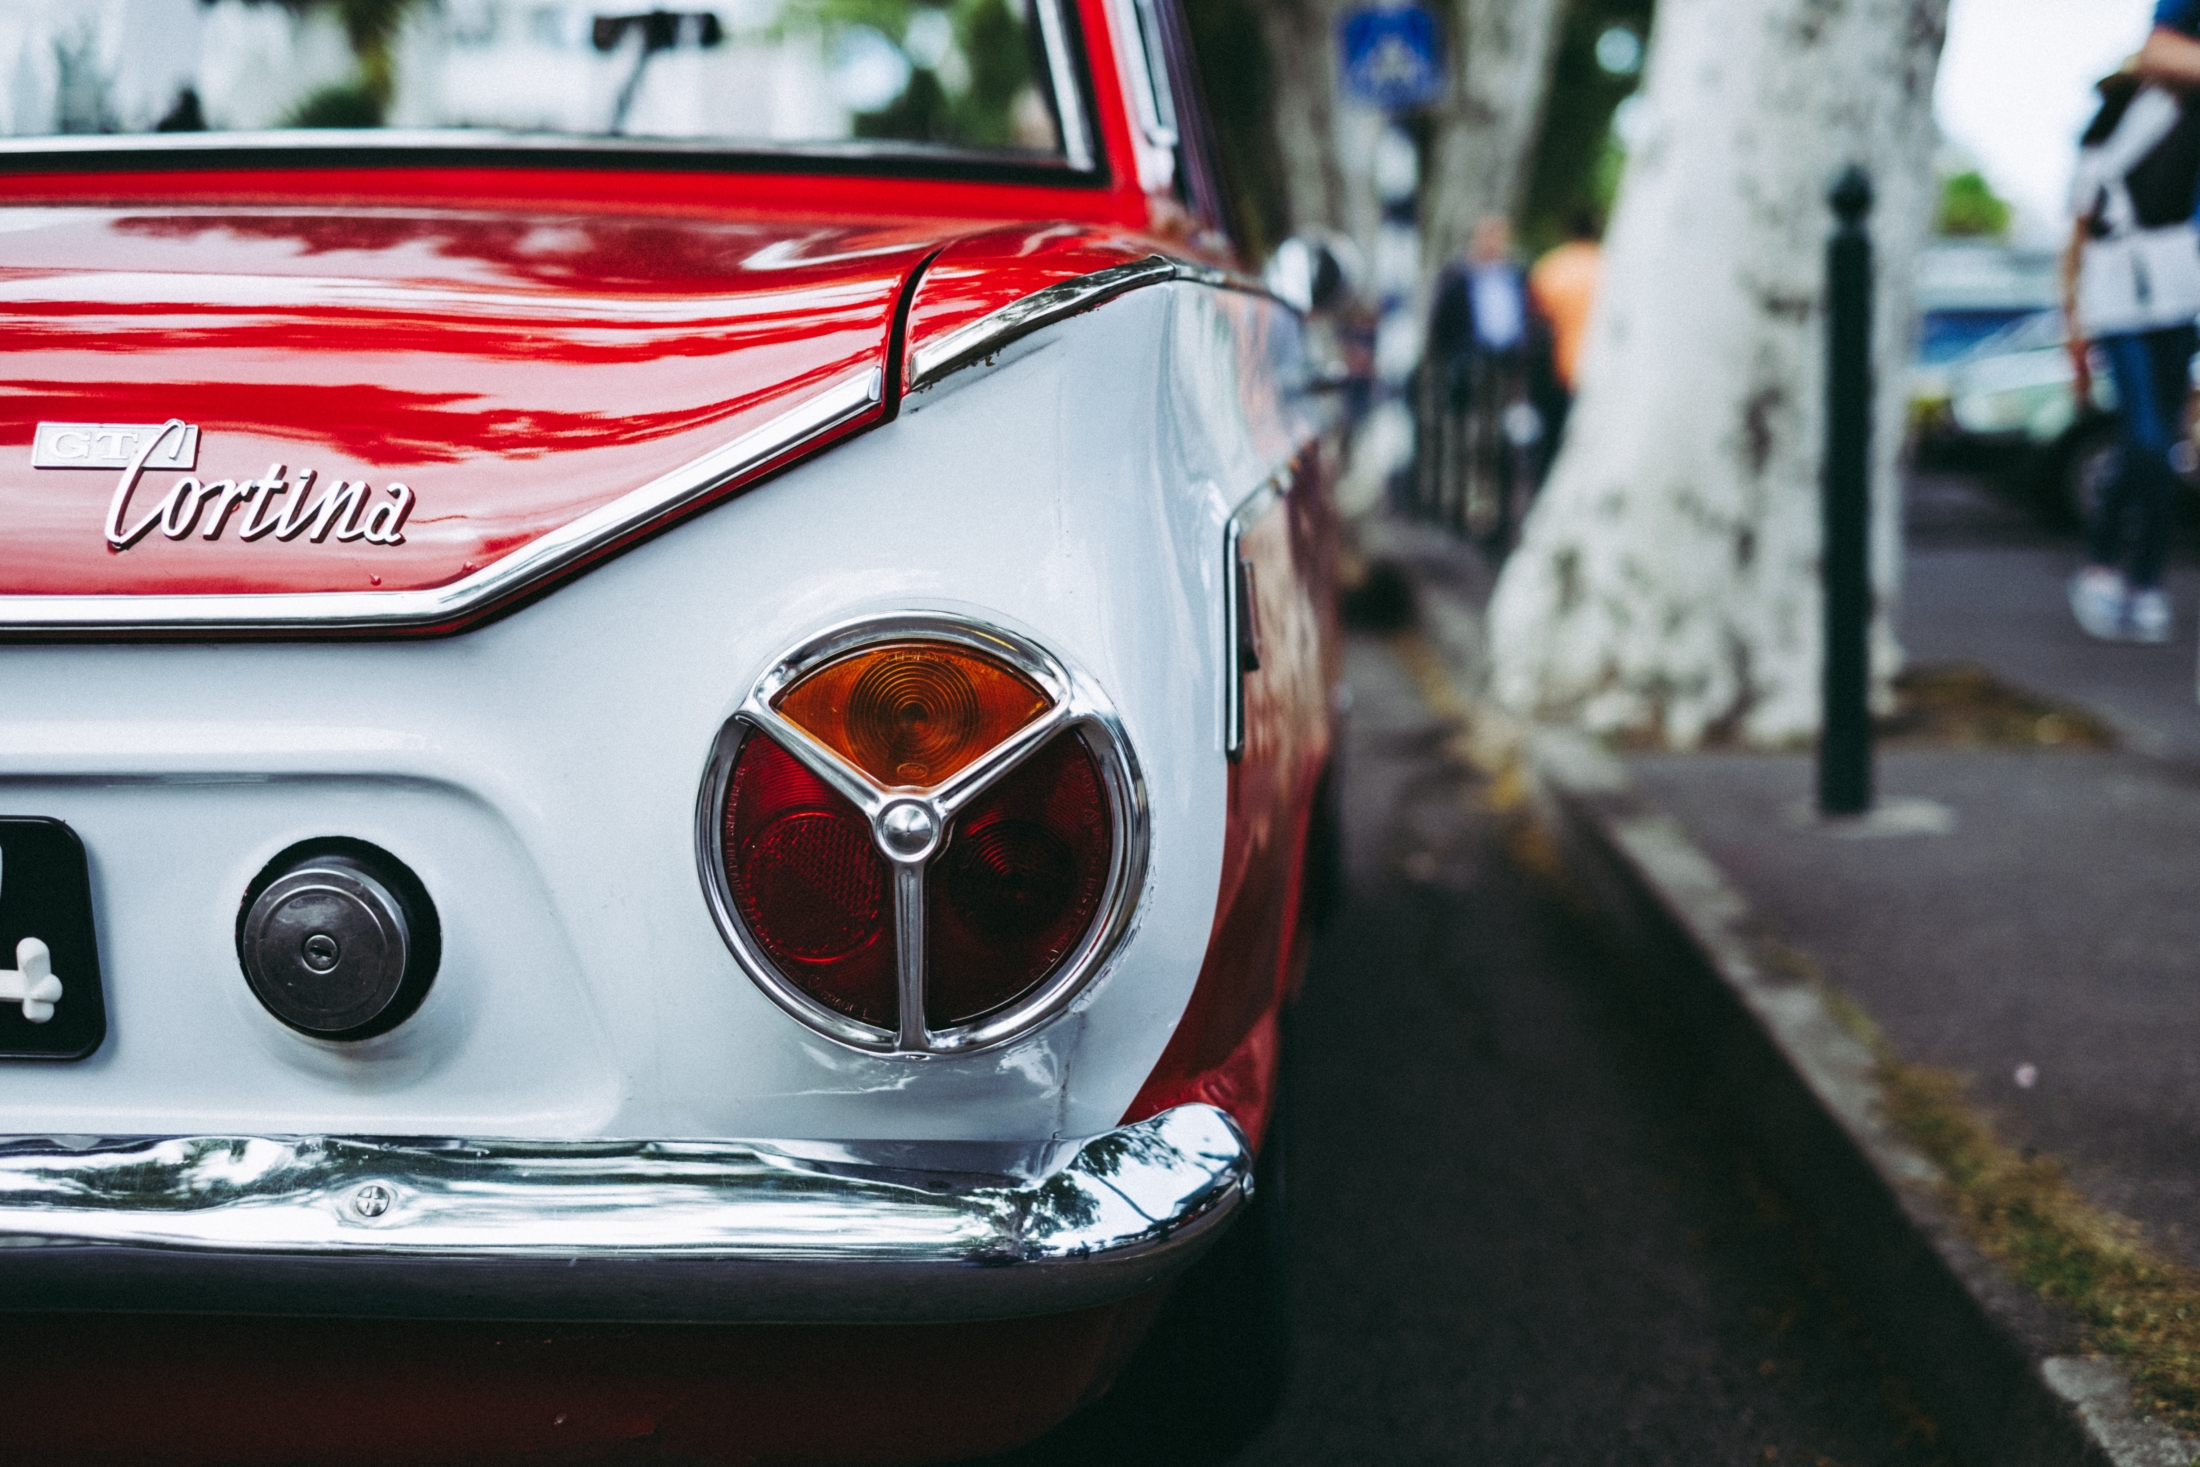 red and white Cortina car parked beside tree